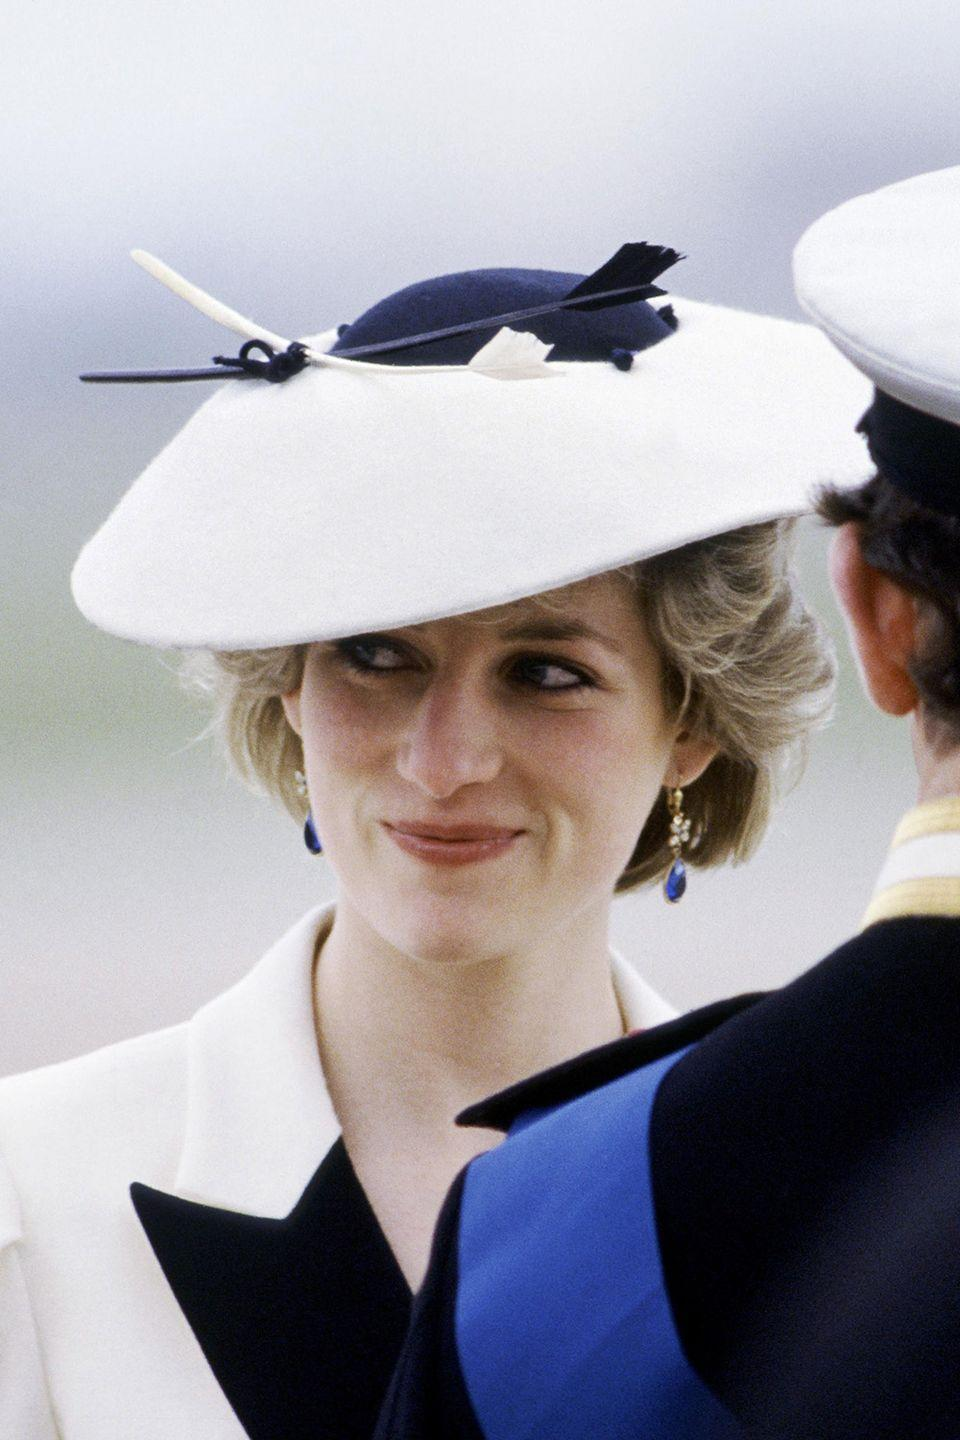 <p>At Heathrow Airport in an intricate navy-and-white saucer hat.</p>